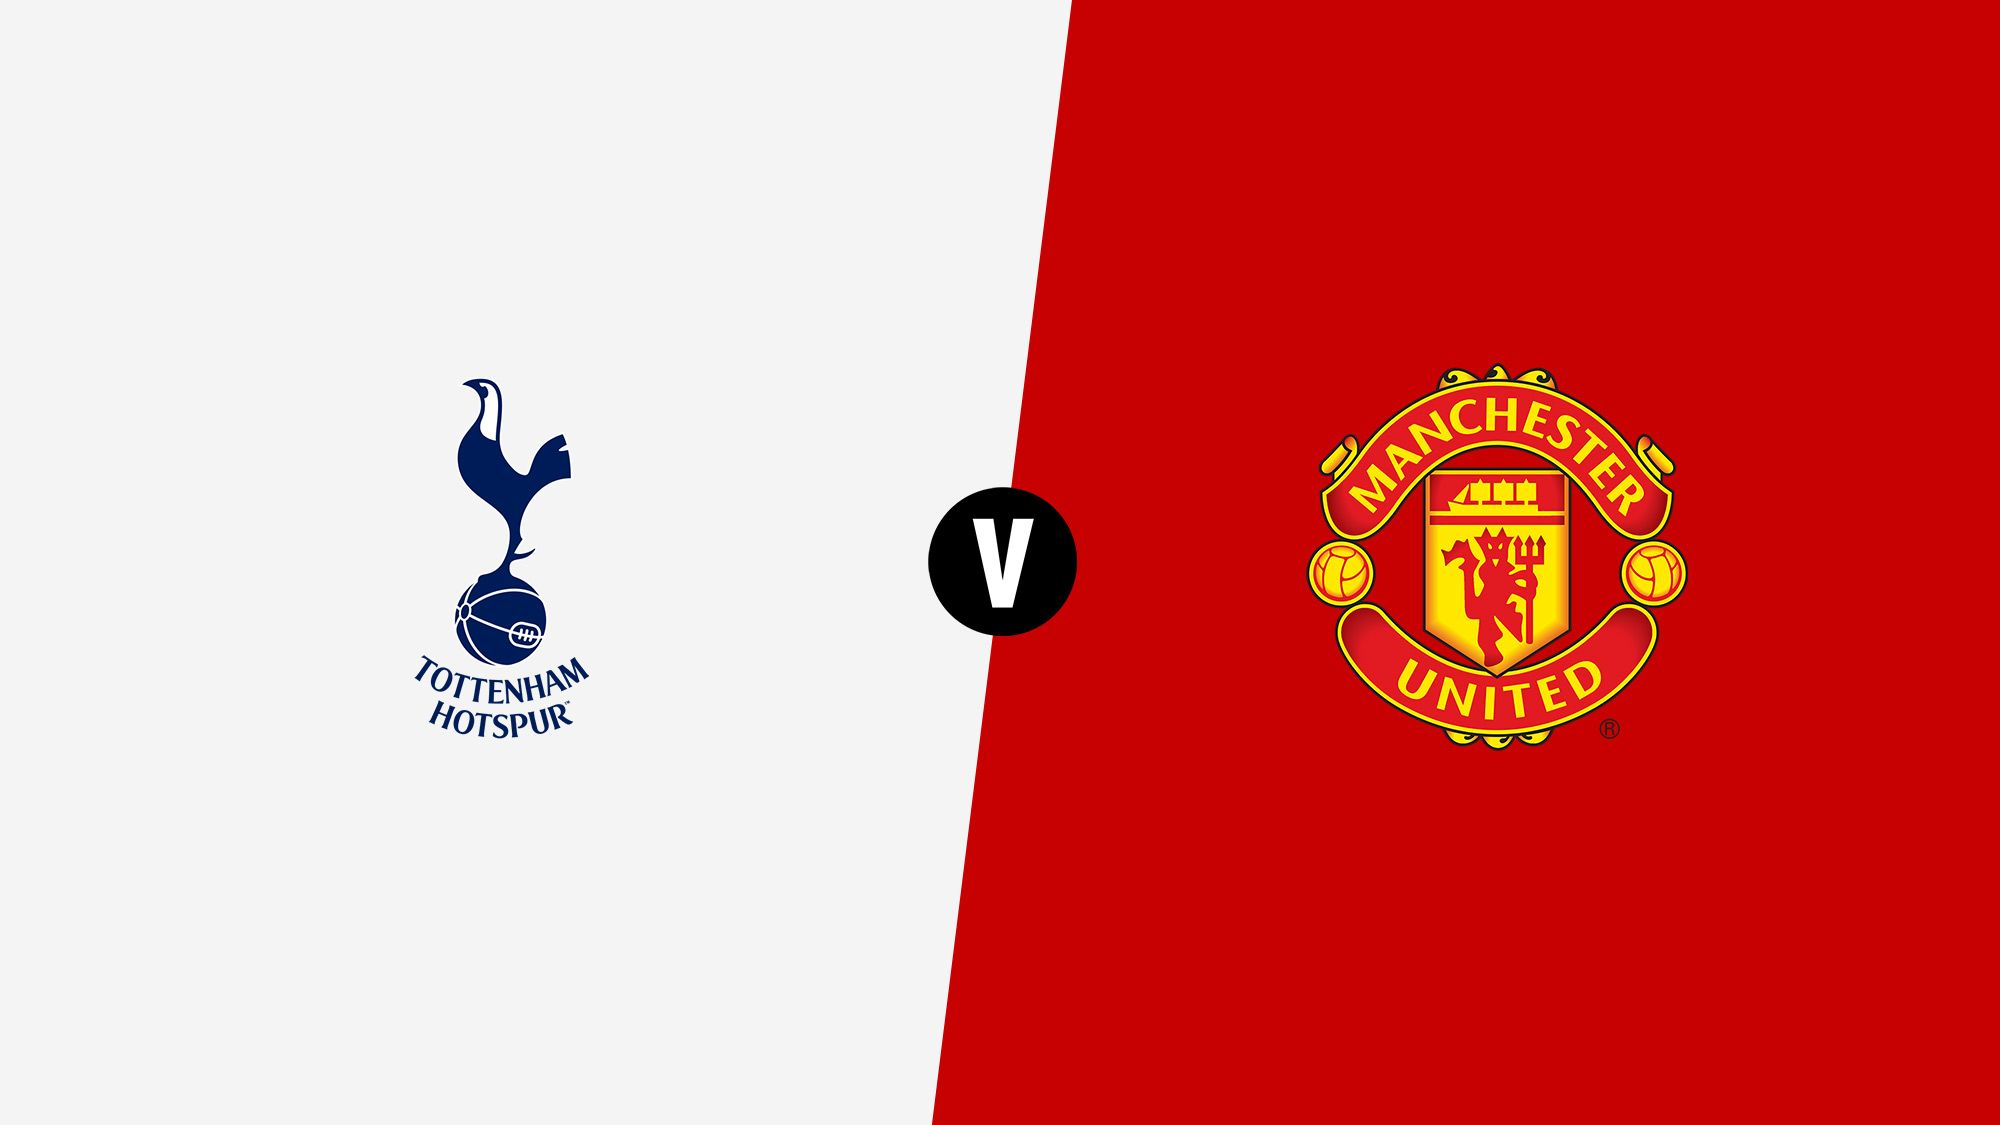 Read Manutd Com S Guide To Manchester United S Emirates Fa Cup Semi Final Against Tottenham Hotspur At Wembley Stadium On Saturday 21 April 2018